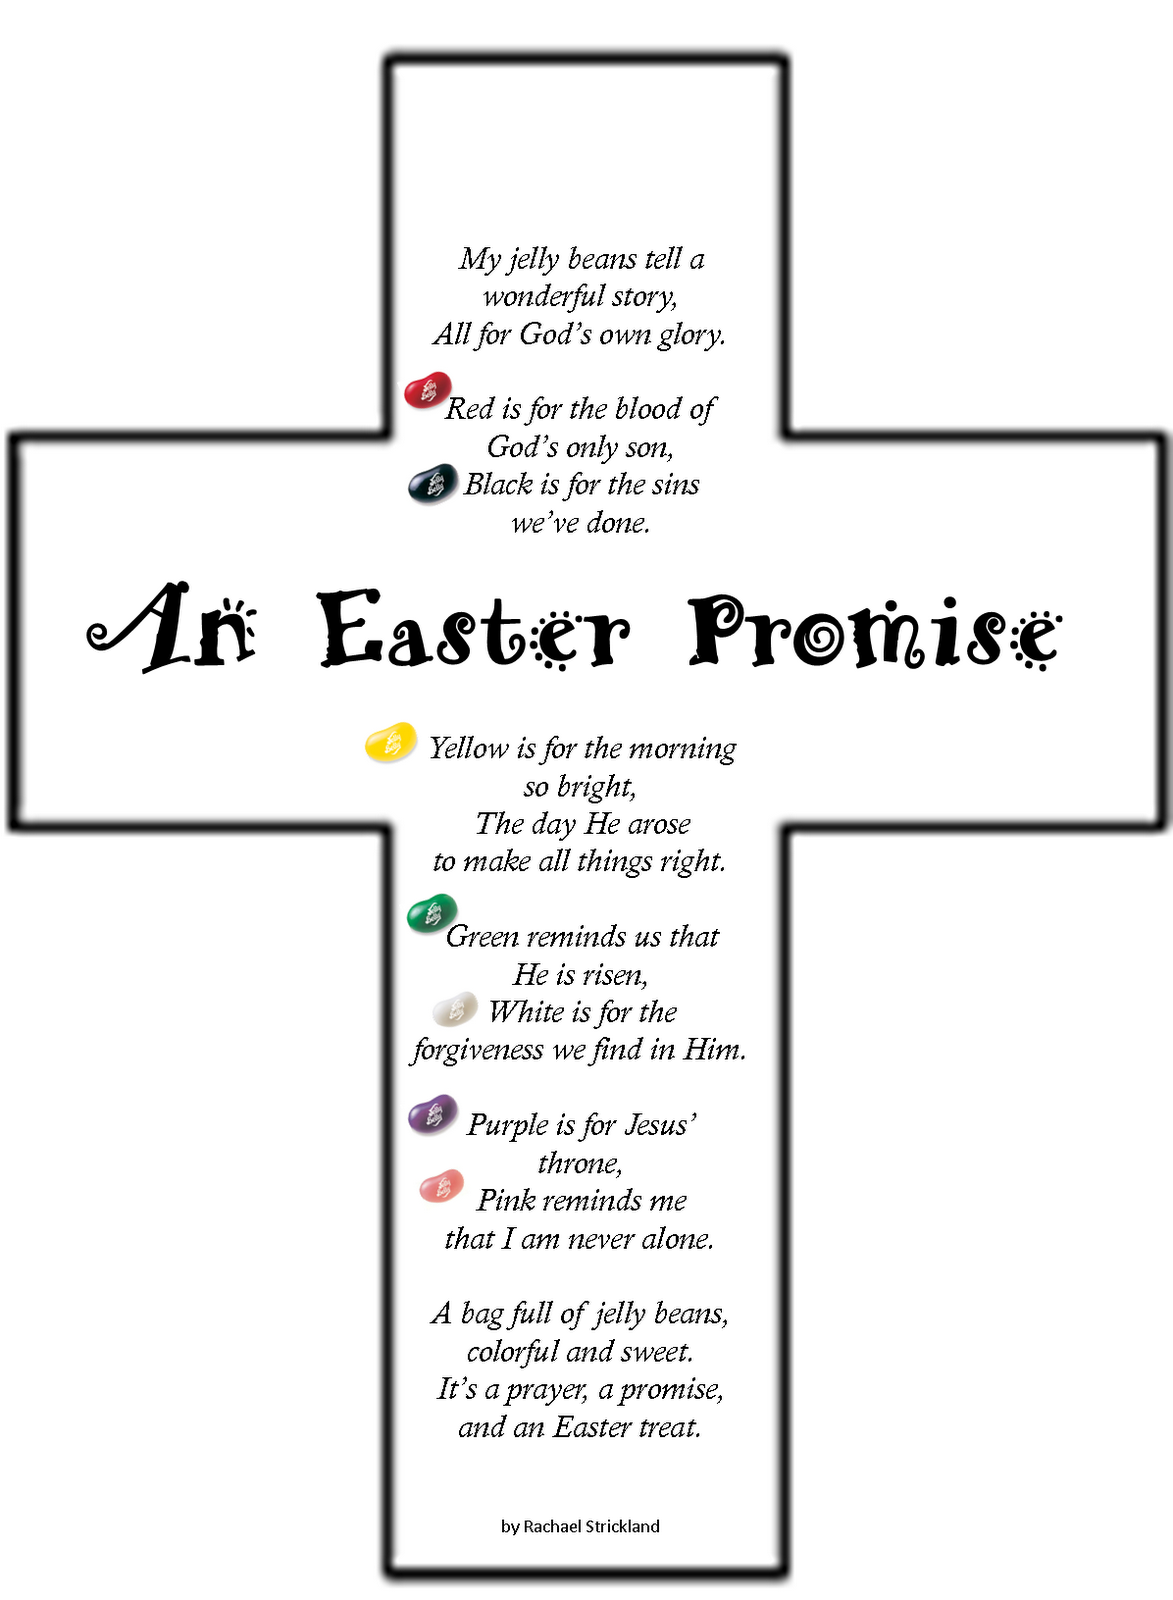 Teaching Integrity: Easter Jelly Bean Poem | Chainimage